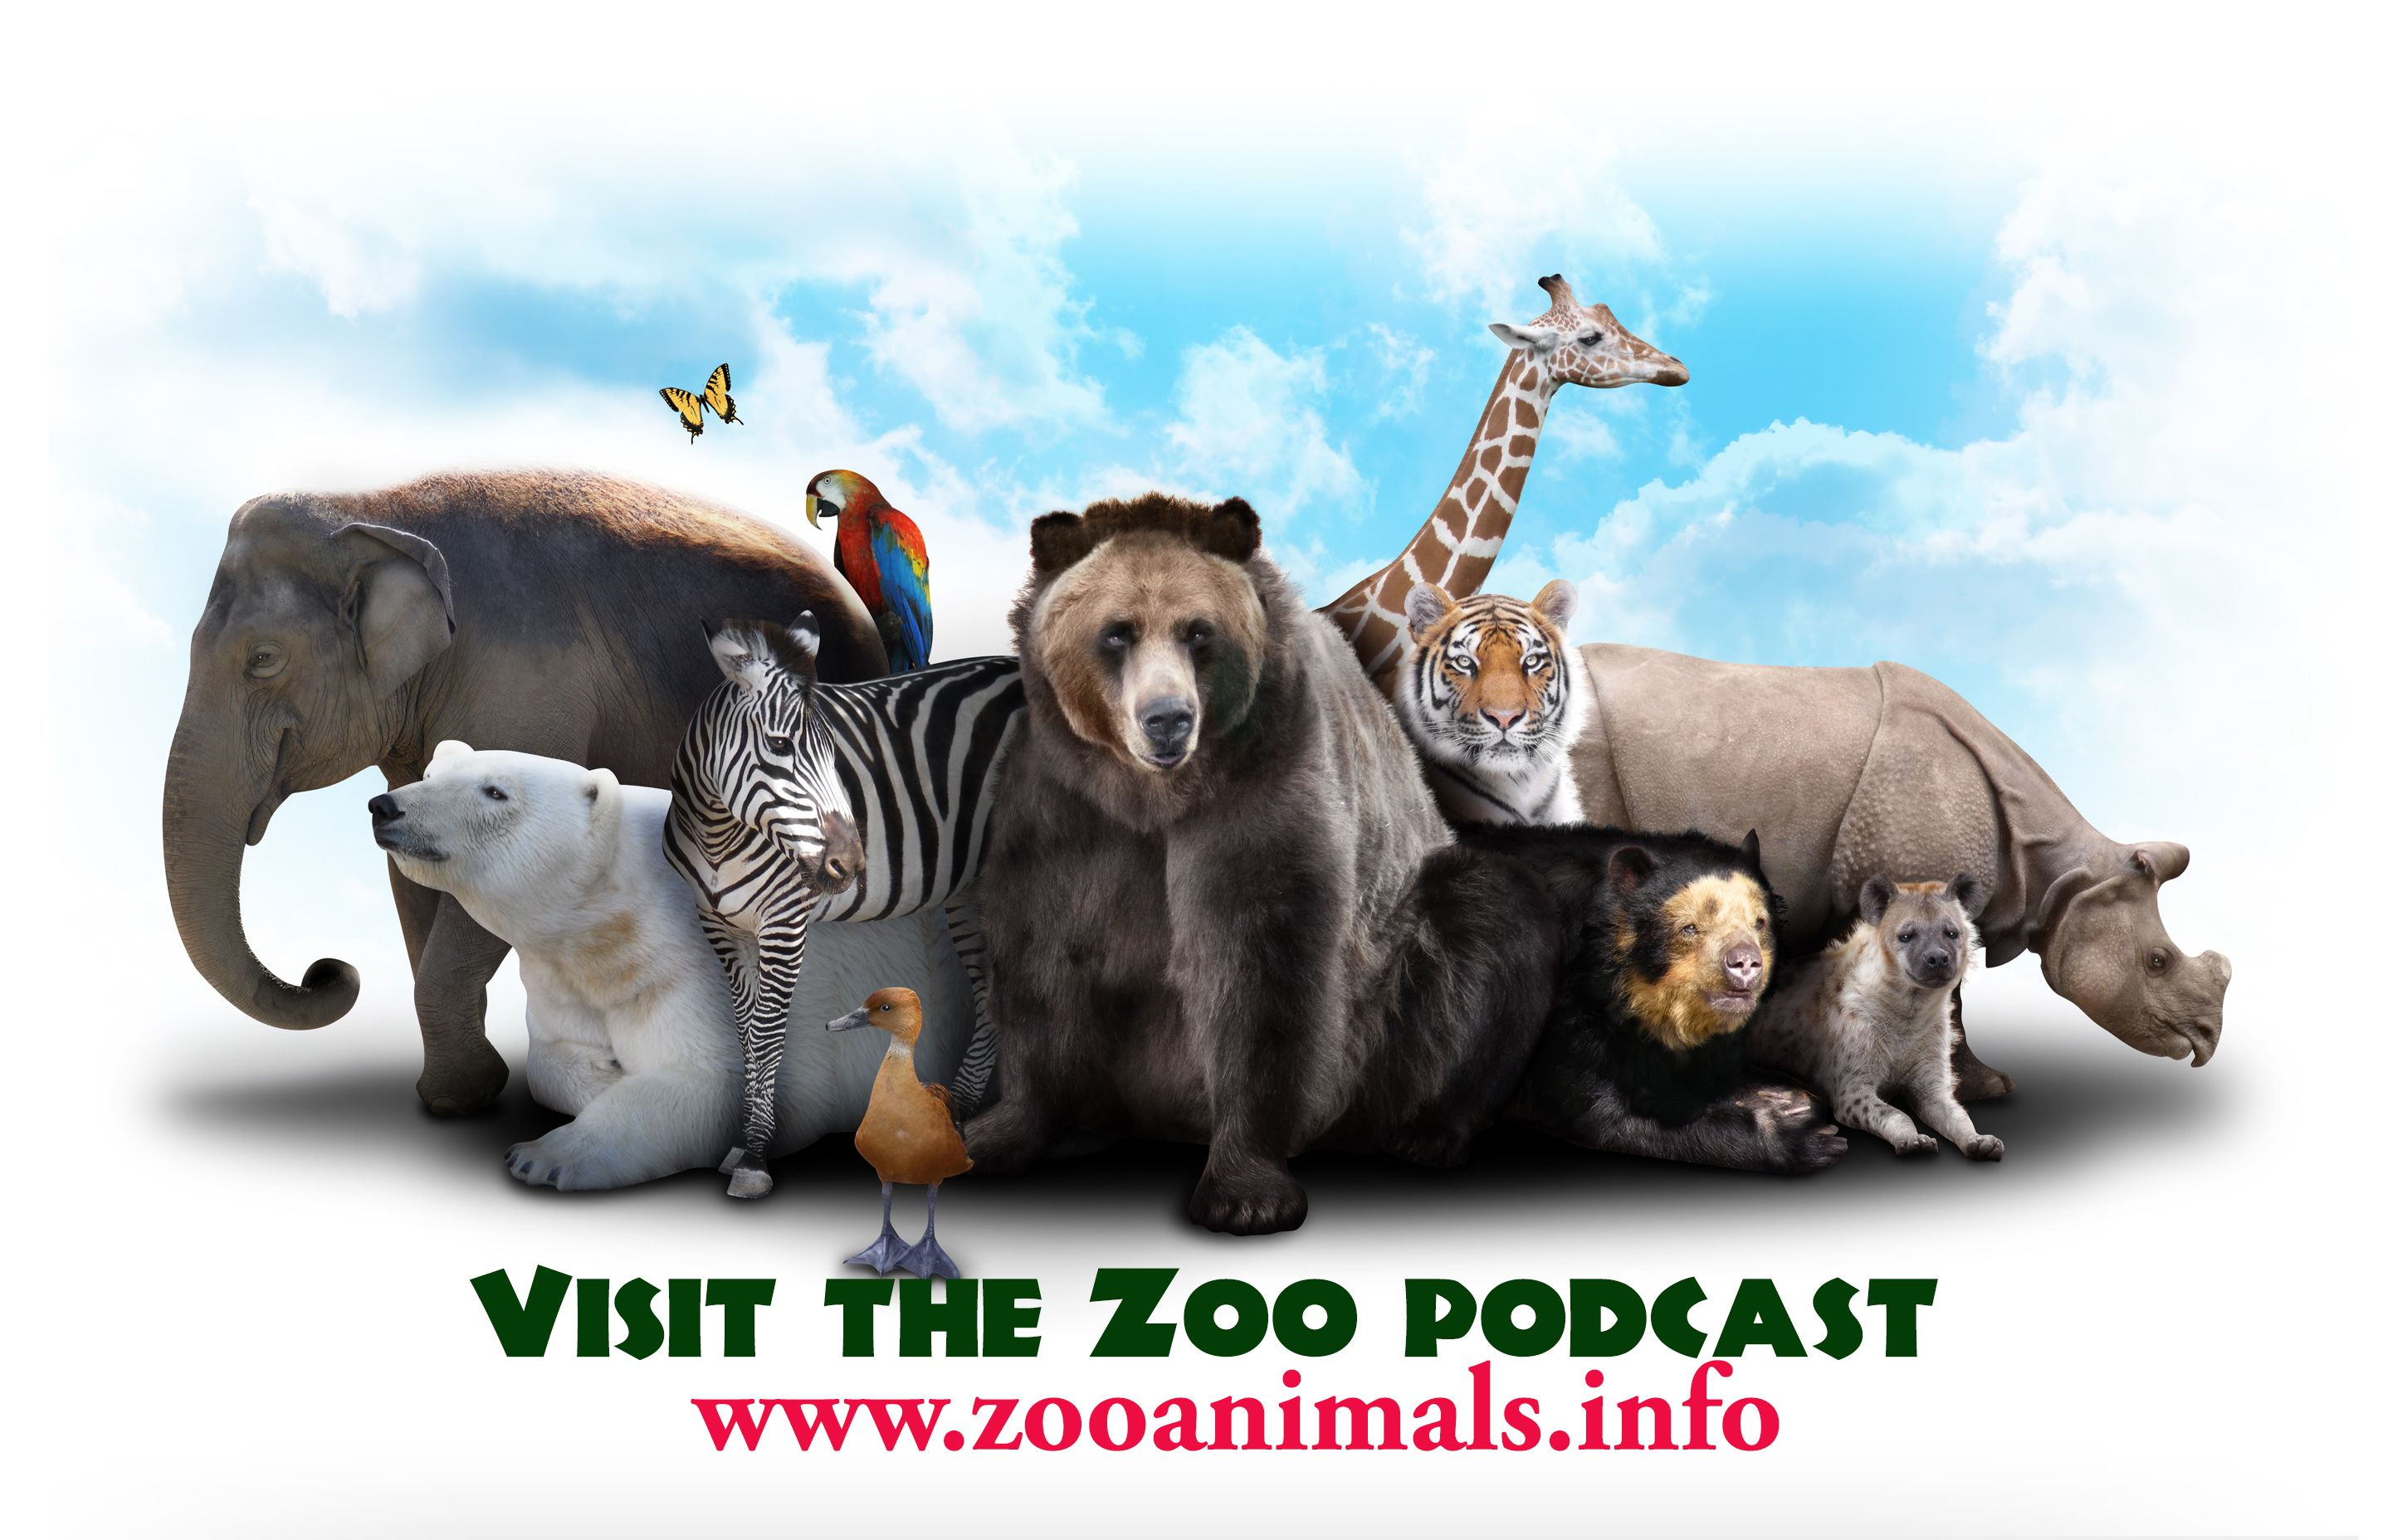 The Visit the Zoo Podcast main website completely ...